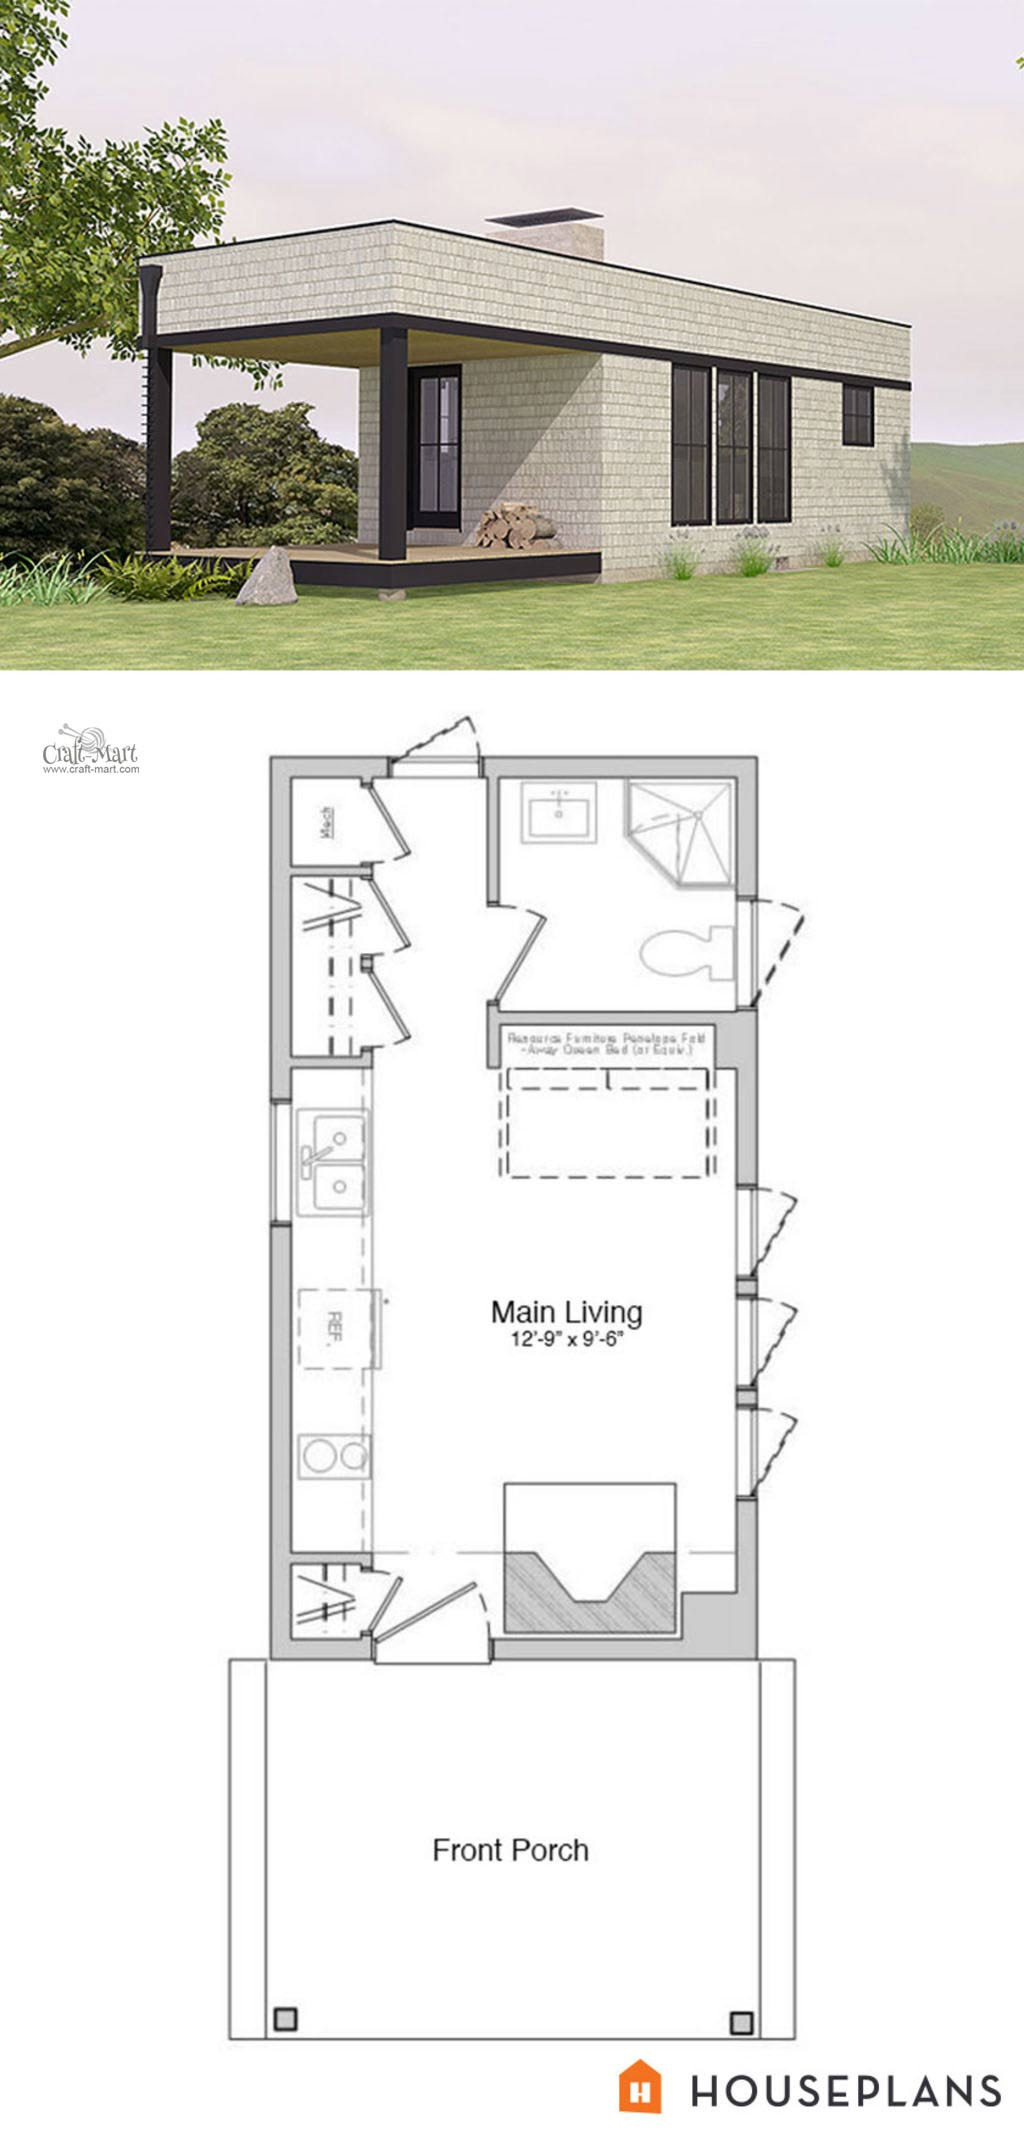 Floor Plans for Tiny Houses On Wheels Awesome 27 Adorable Free Tiny House Floor Plans Craft Mart